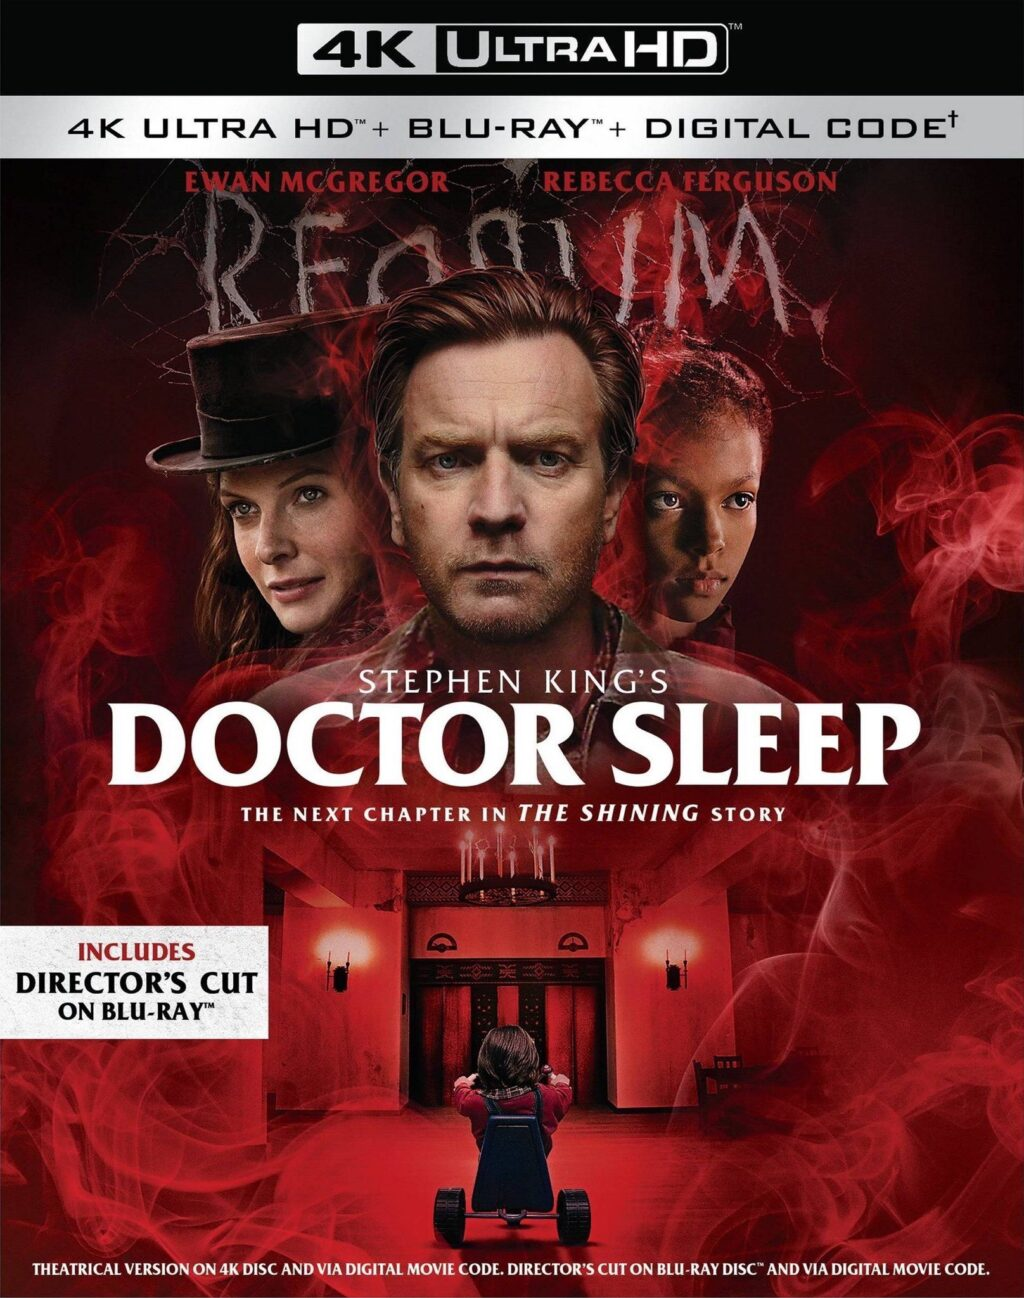 DOCTOR SLEEP Bl ray DC 1024x1298 - Stephen King's DOCTOR SLEEP Now Streaming on HBO Max